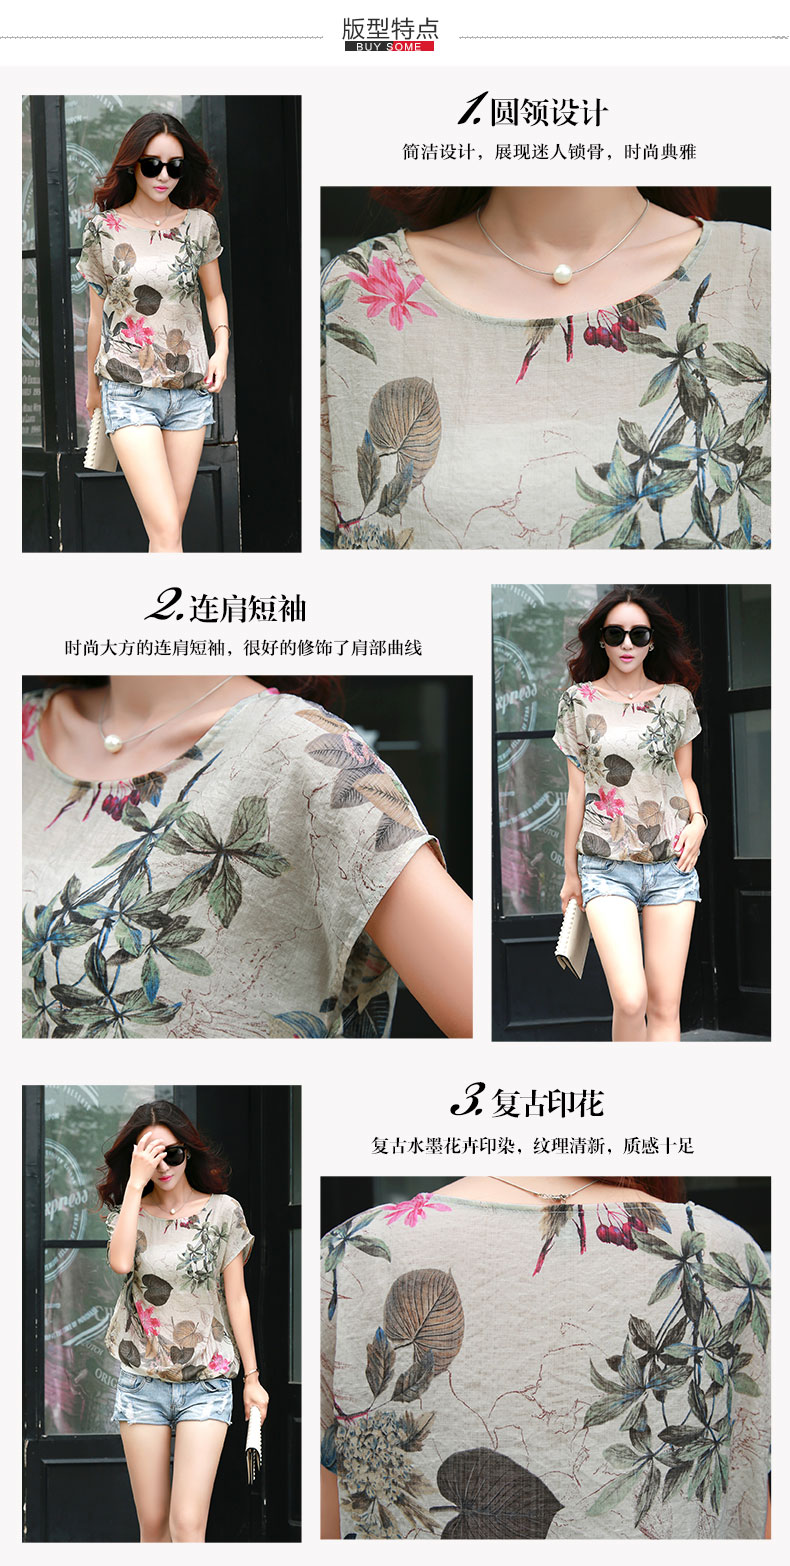 HTB1xk 0LVXXXXXfXVXXq6xXFXXXs - Floral Print Blouse Cotton Linen Women Shirts Summer Ladies Tops